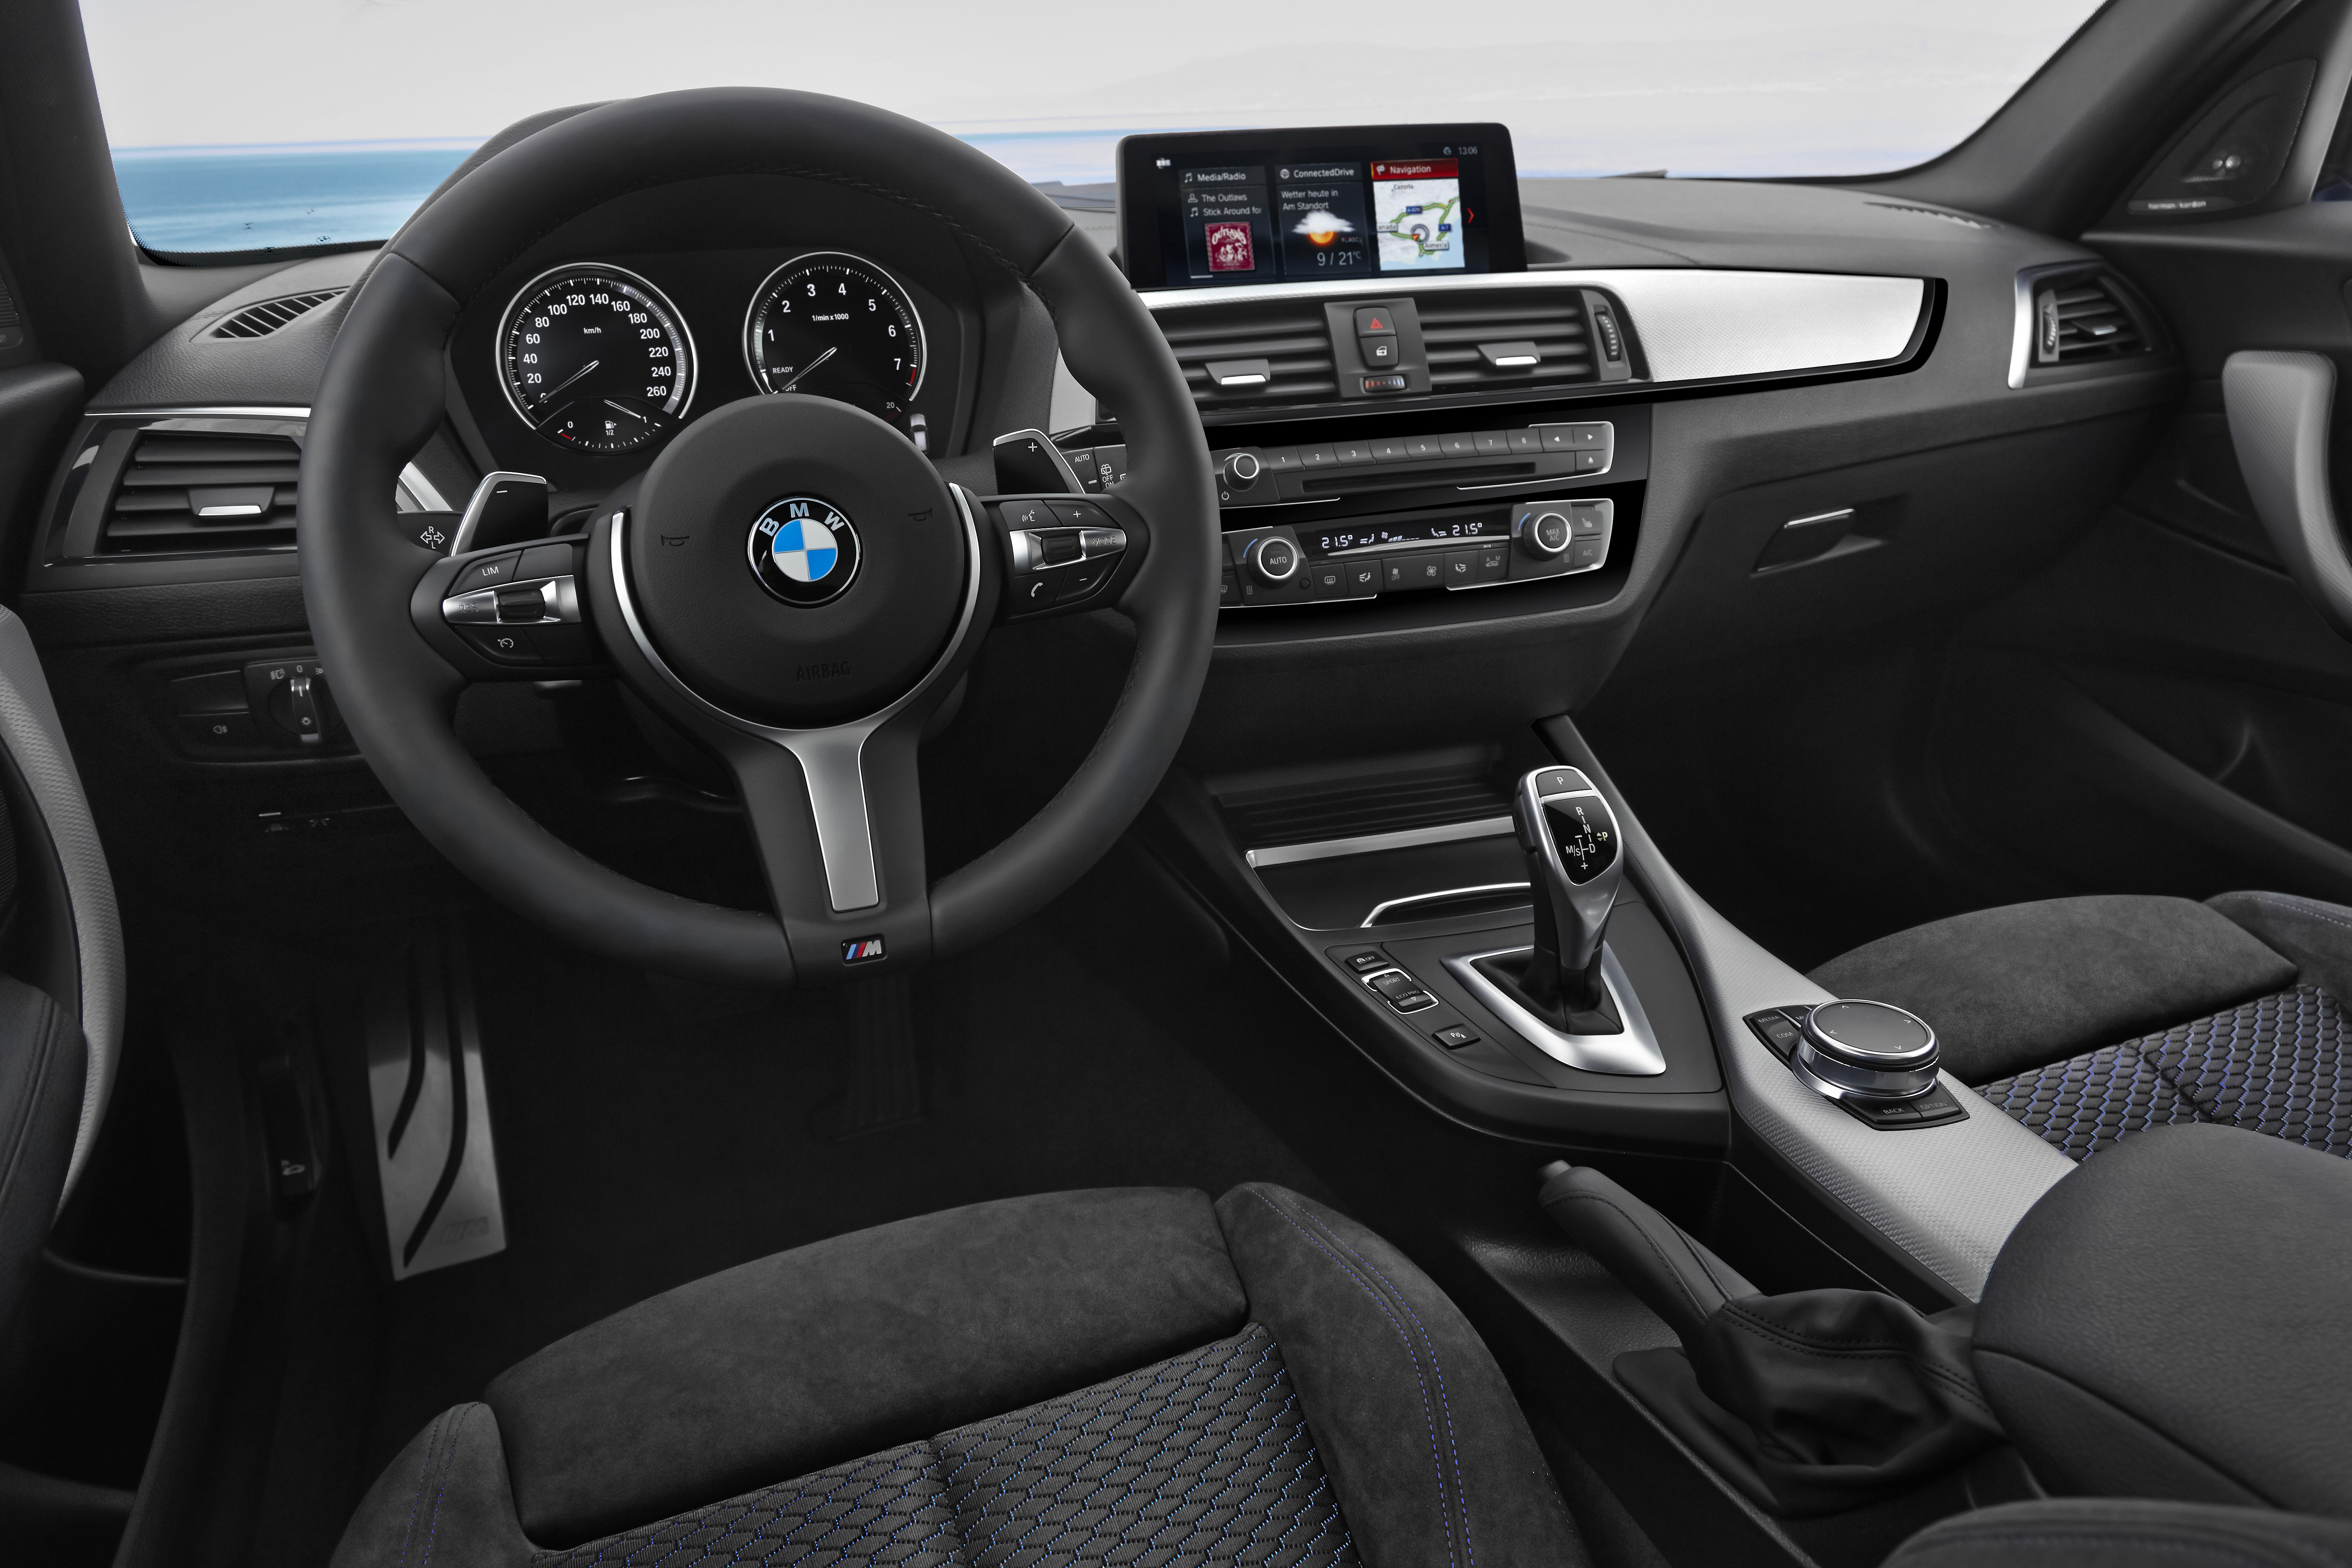 F20 Bmw 1 Series Gets Updated Interior Revised Kit Paul Tan Image